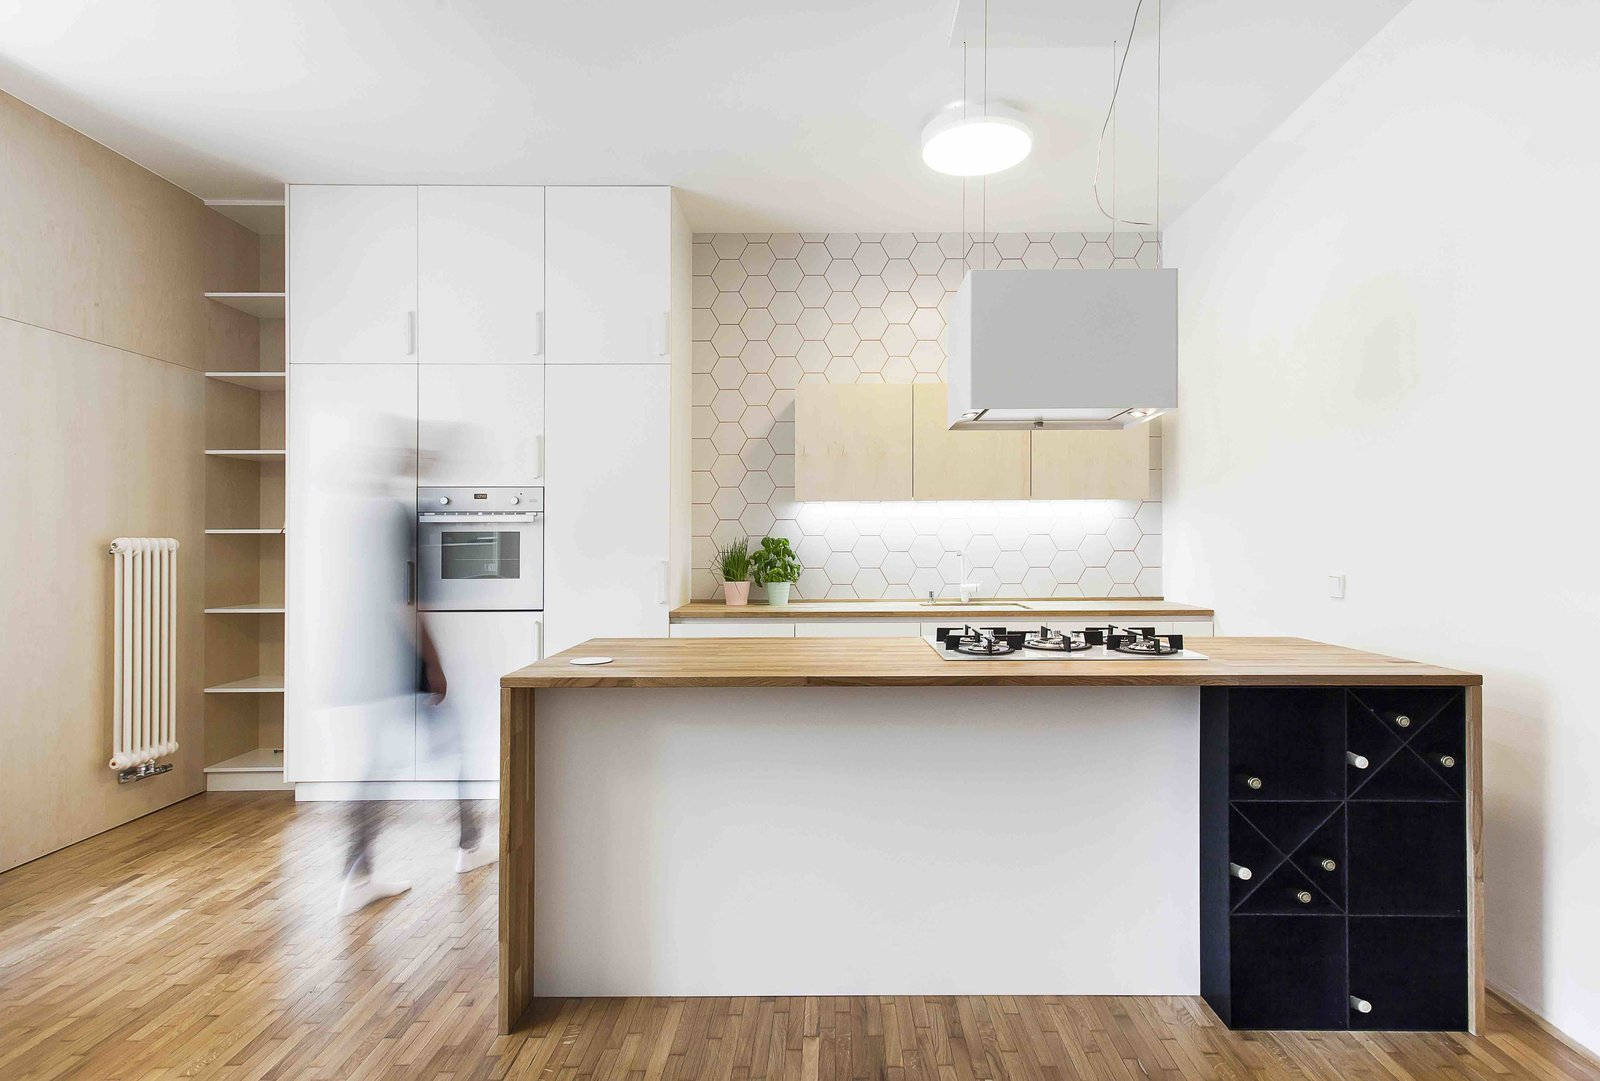 Tagged: Kitchen, White Cabinet, Medium Hardwood Floor, Wood Counter, Range, Ceiling Lighting, Range Hood, Wall Oven, Ceramic Tile Backsplashe, and Undermount Sink.  Best Photos from A Family Apartment in Prague That's Filled With Clever Storage Solutions and Built-In Nooks